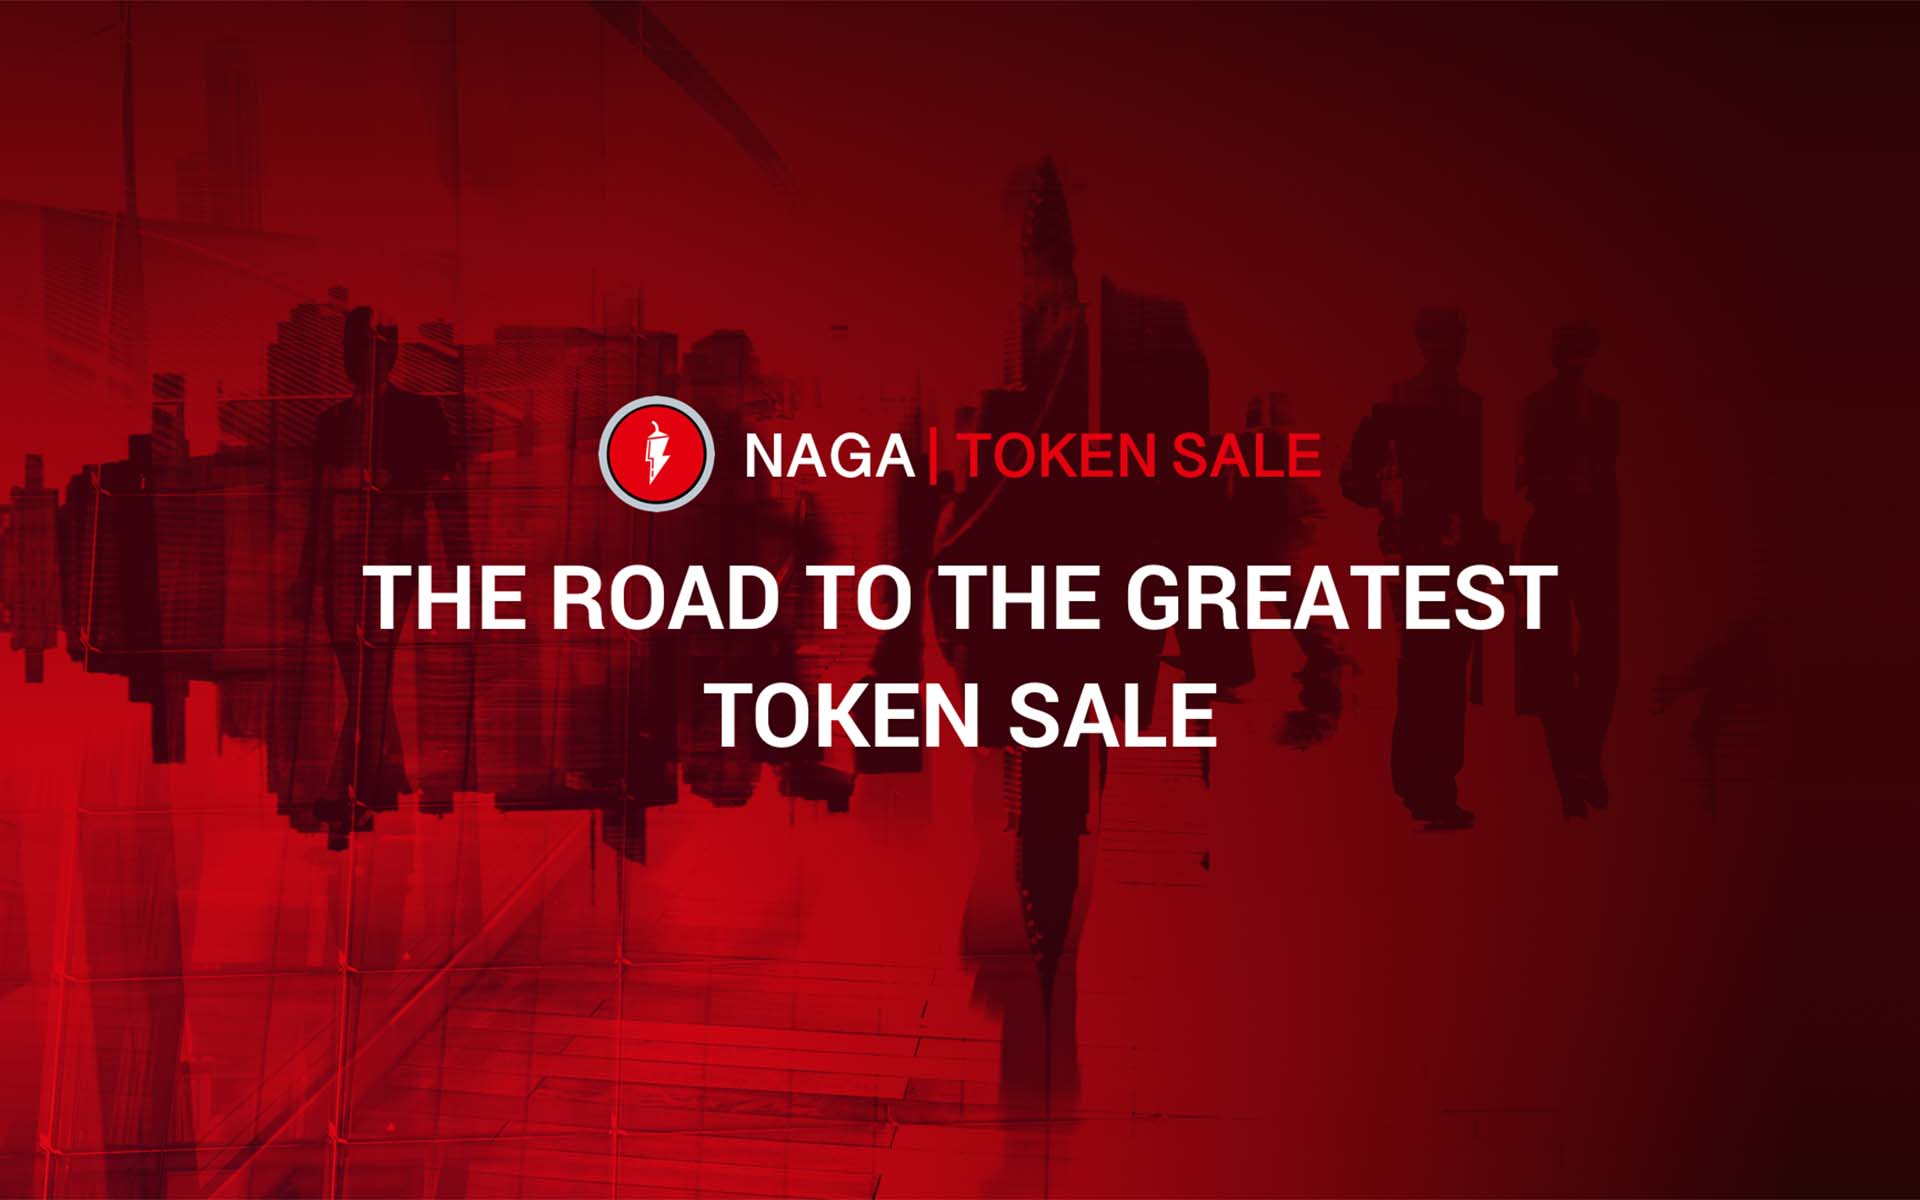 NAGA Token Sale is Nearly Over! 2 Days Left Before the End of the Token Sale!